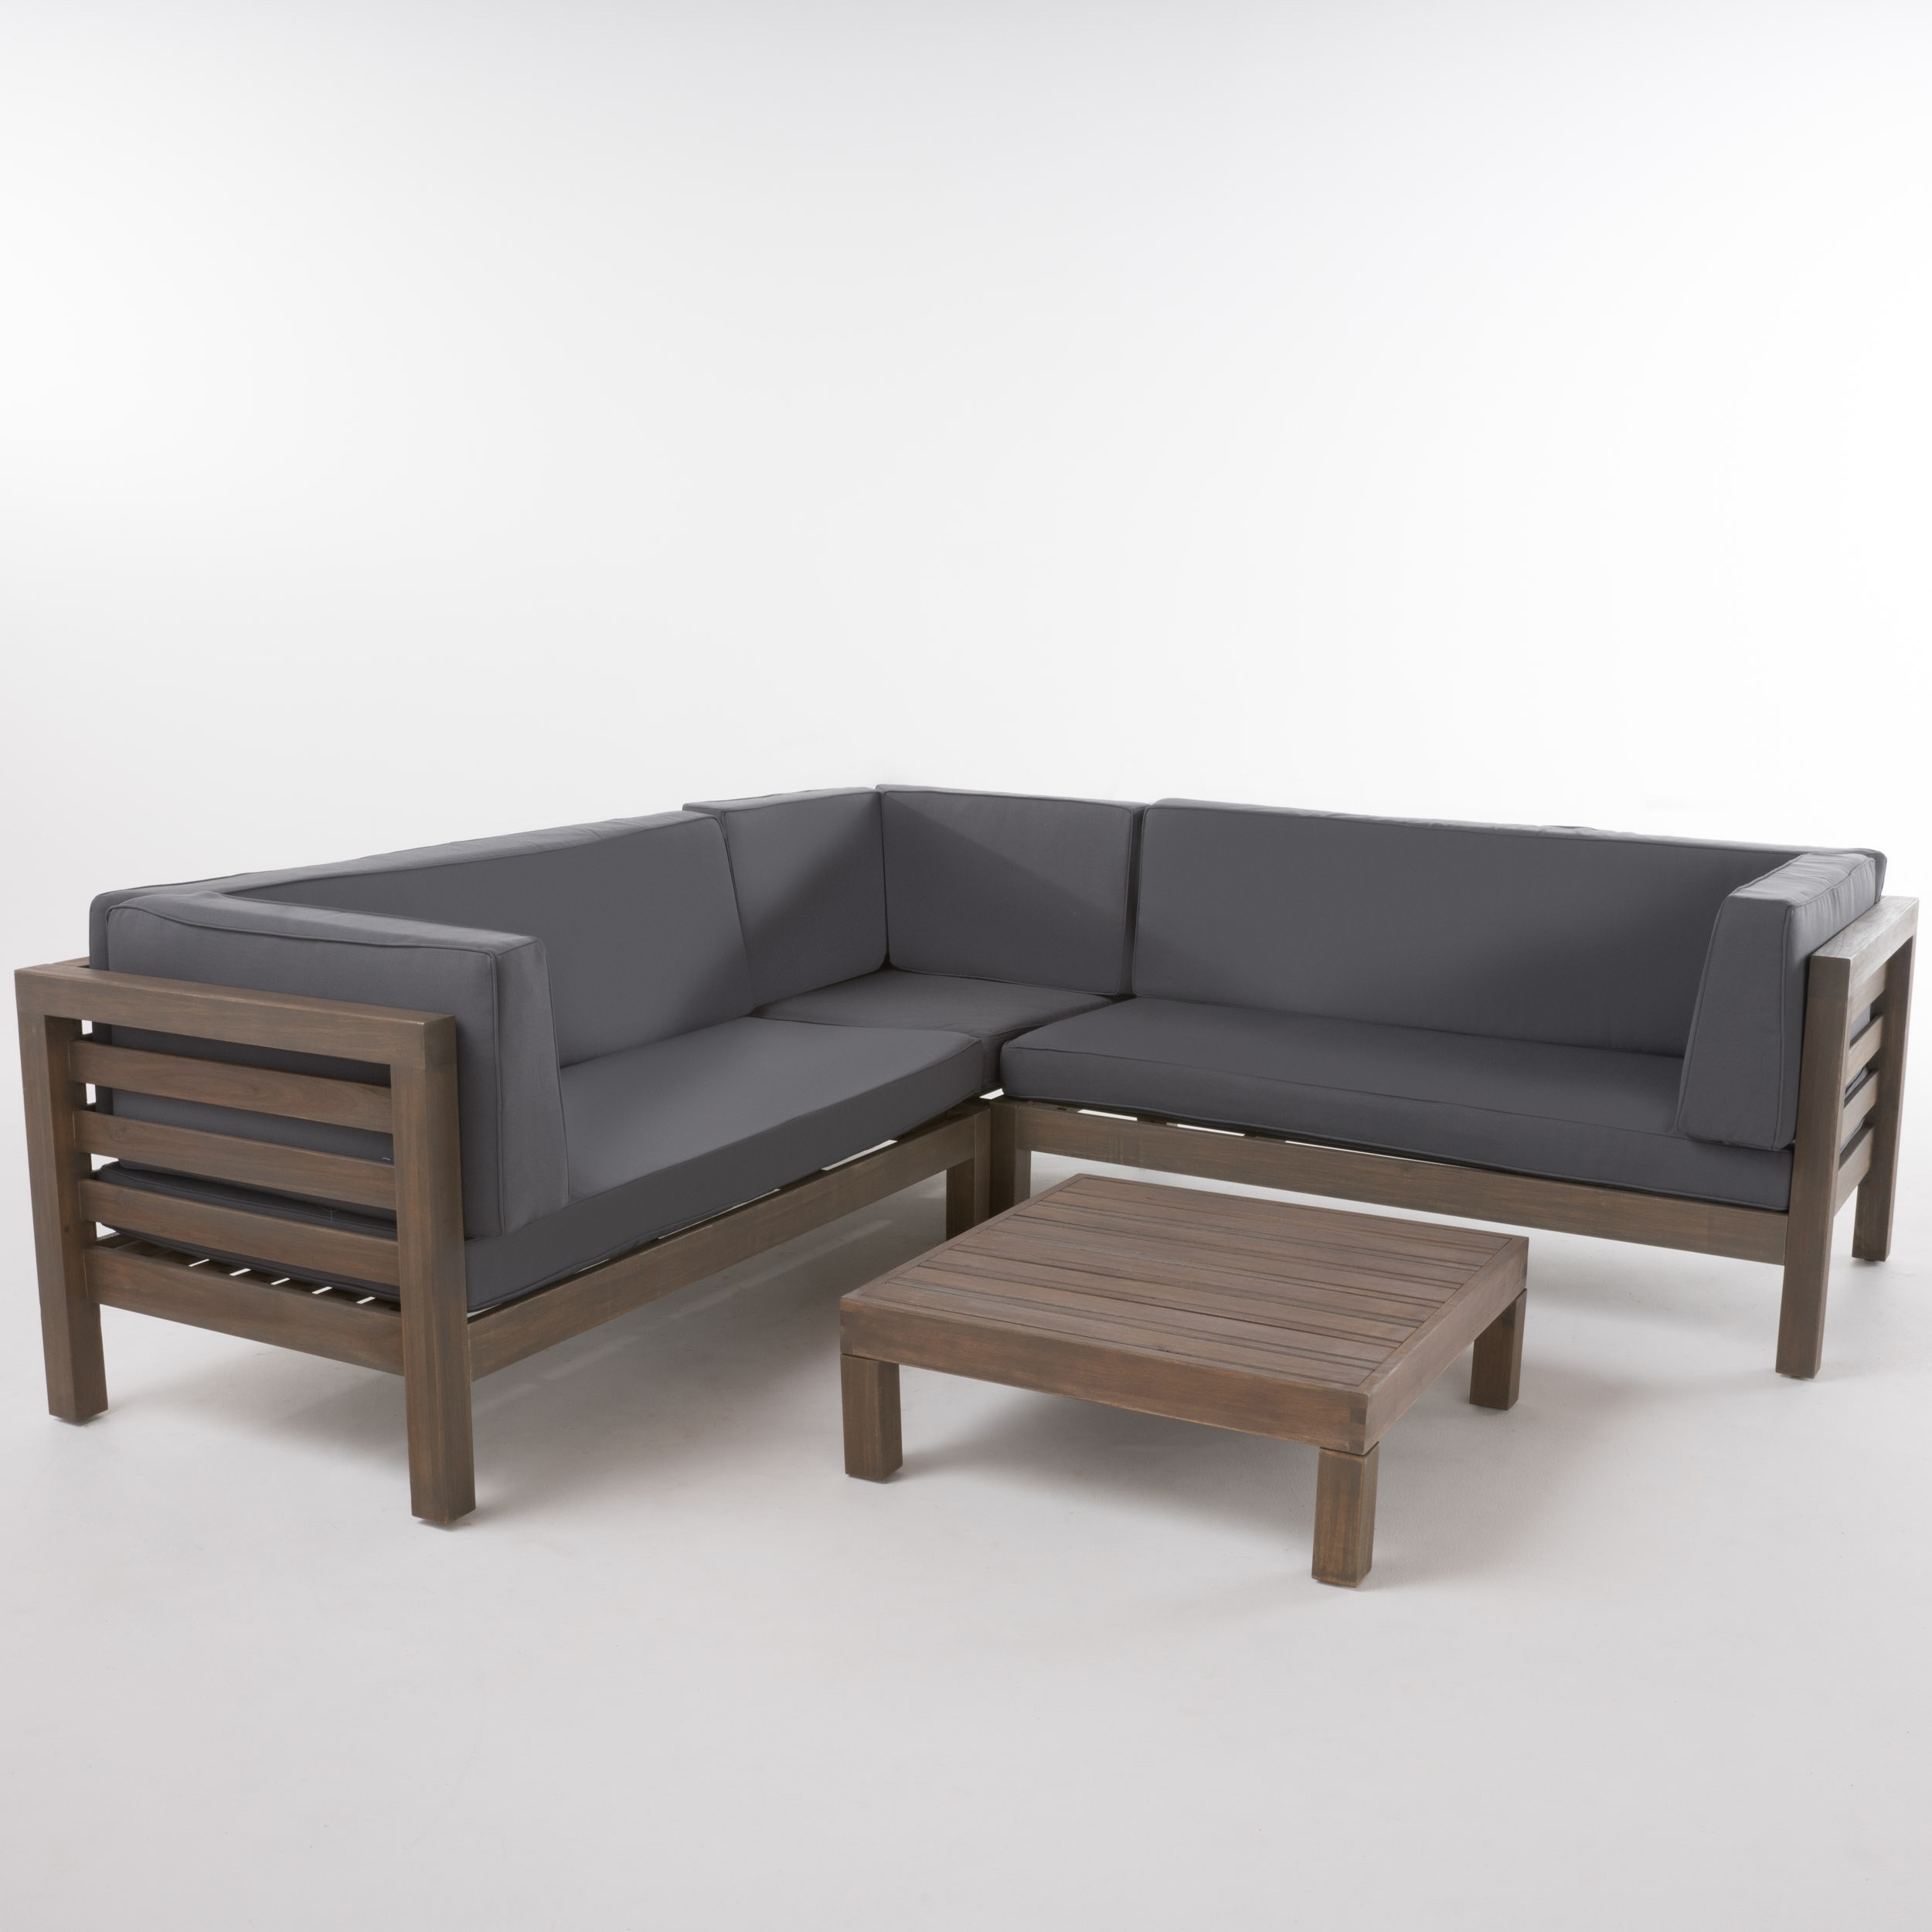 Gracie Oaks Birdsboro 4 Piece Sectional Set With Cushions & Reviews In Karen 3 Piece Sectionals (Image 10 of 25)